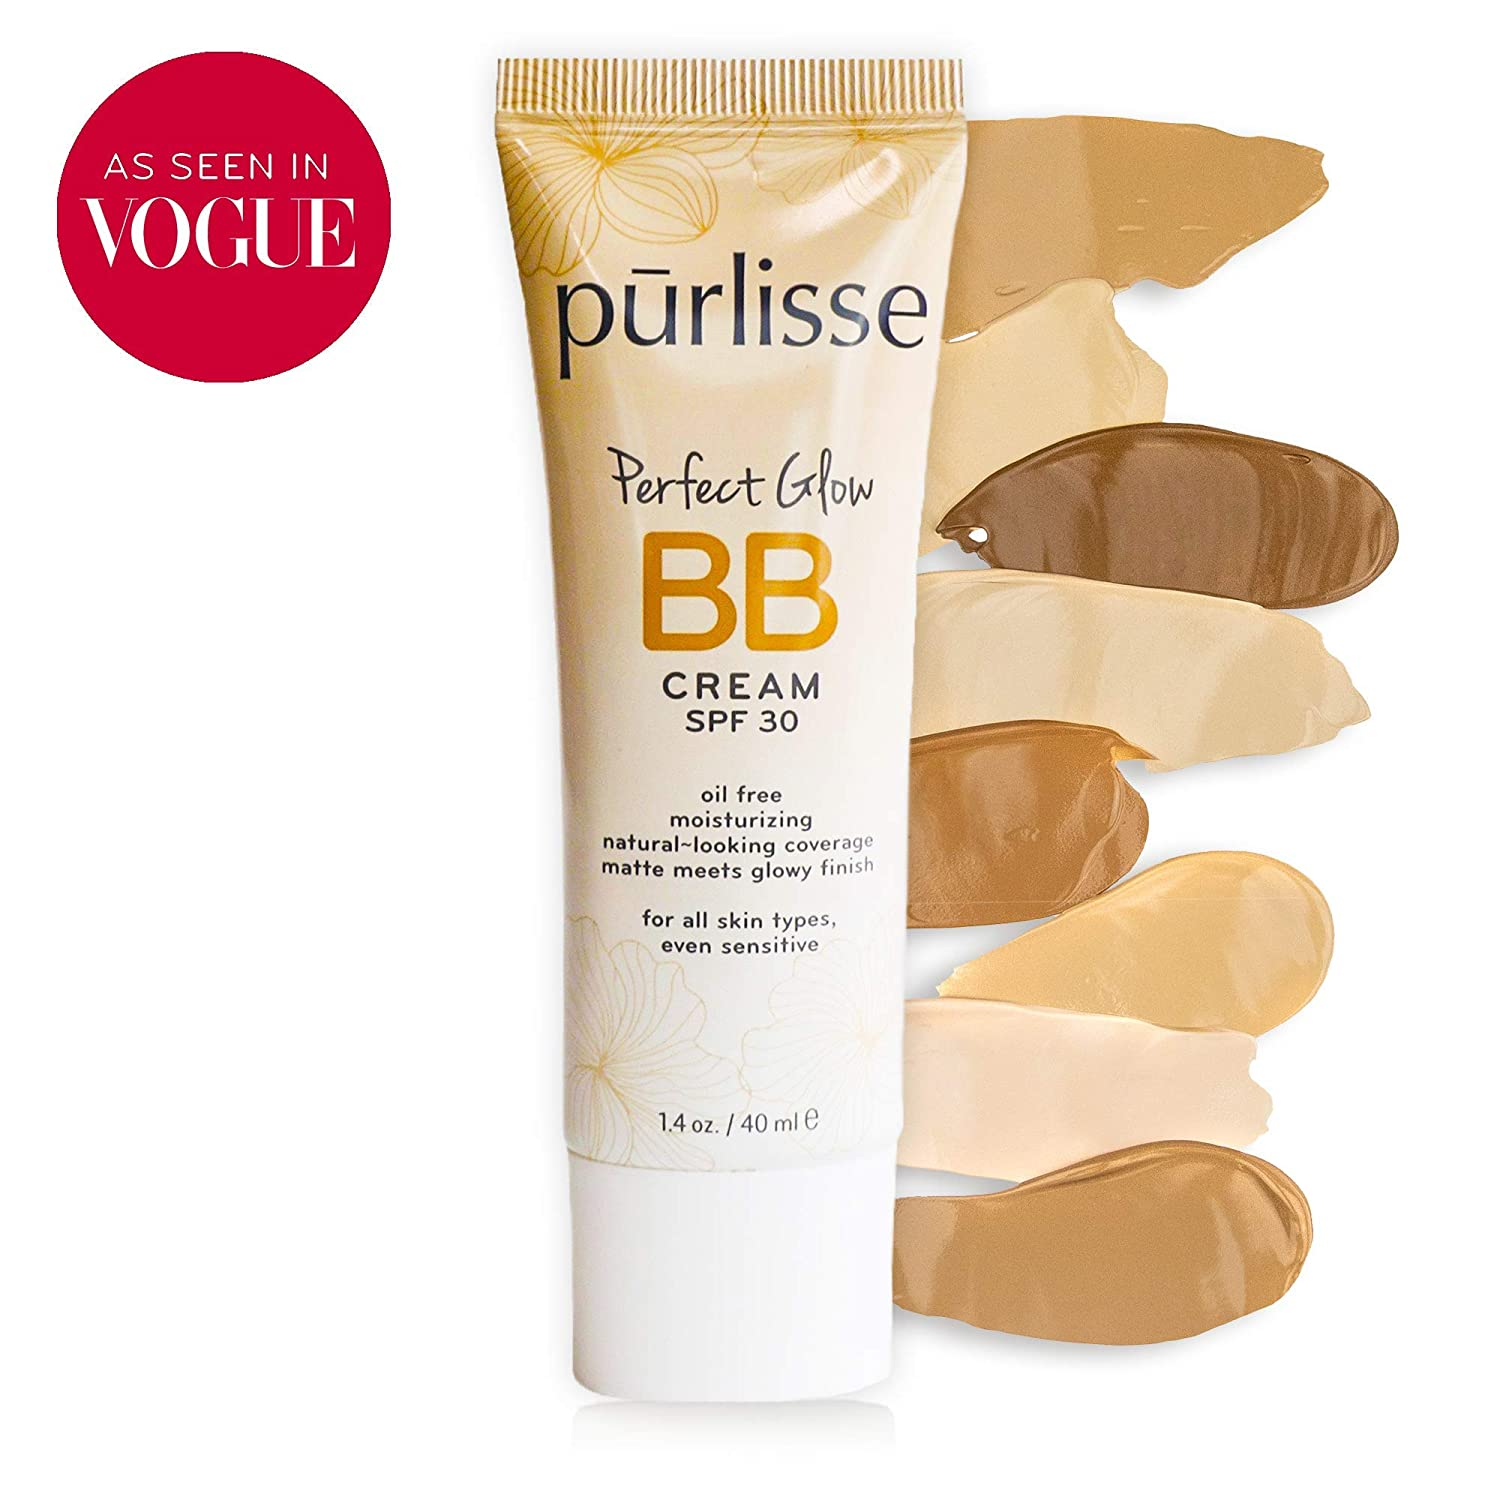 purlisse BB Tinted Moisturizer Cream SPF 30 for All Skin Types, Medium Tan, 1.4 Ounce